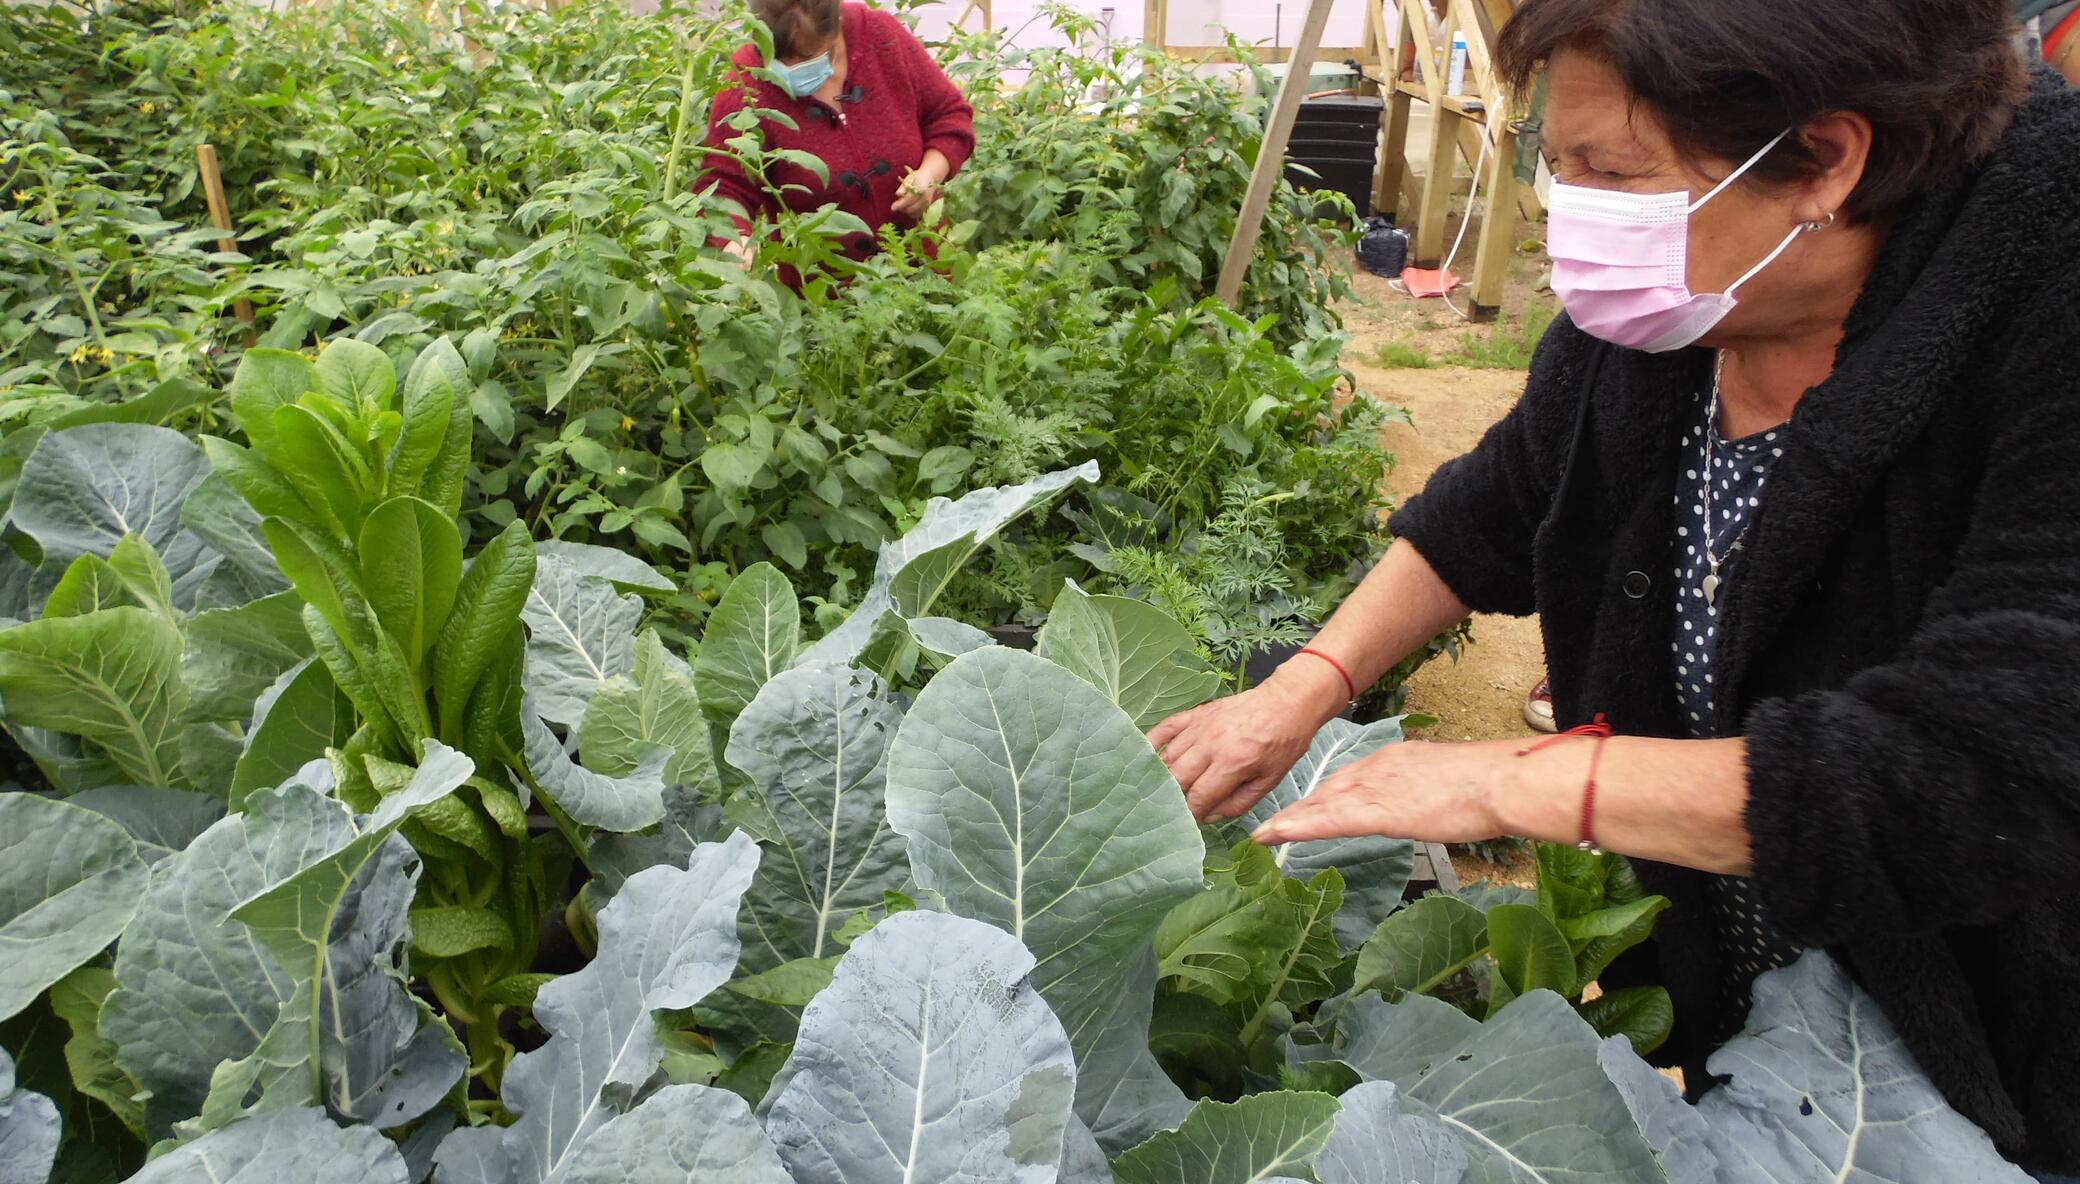 Provide sustainable greenhouses to feed families